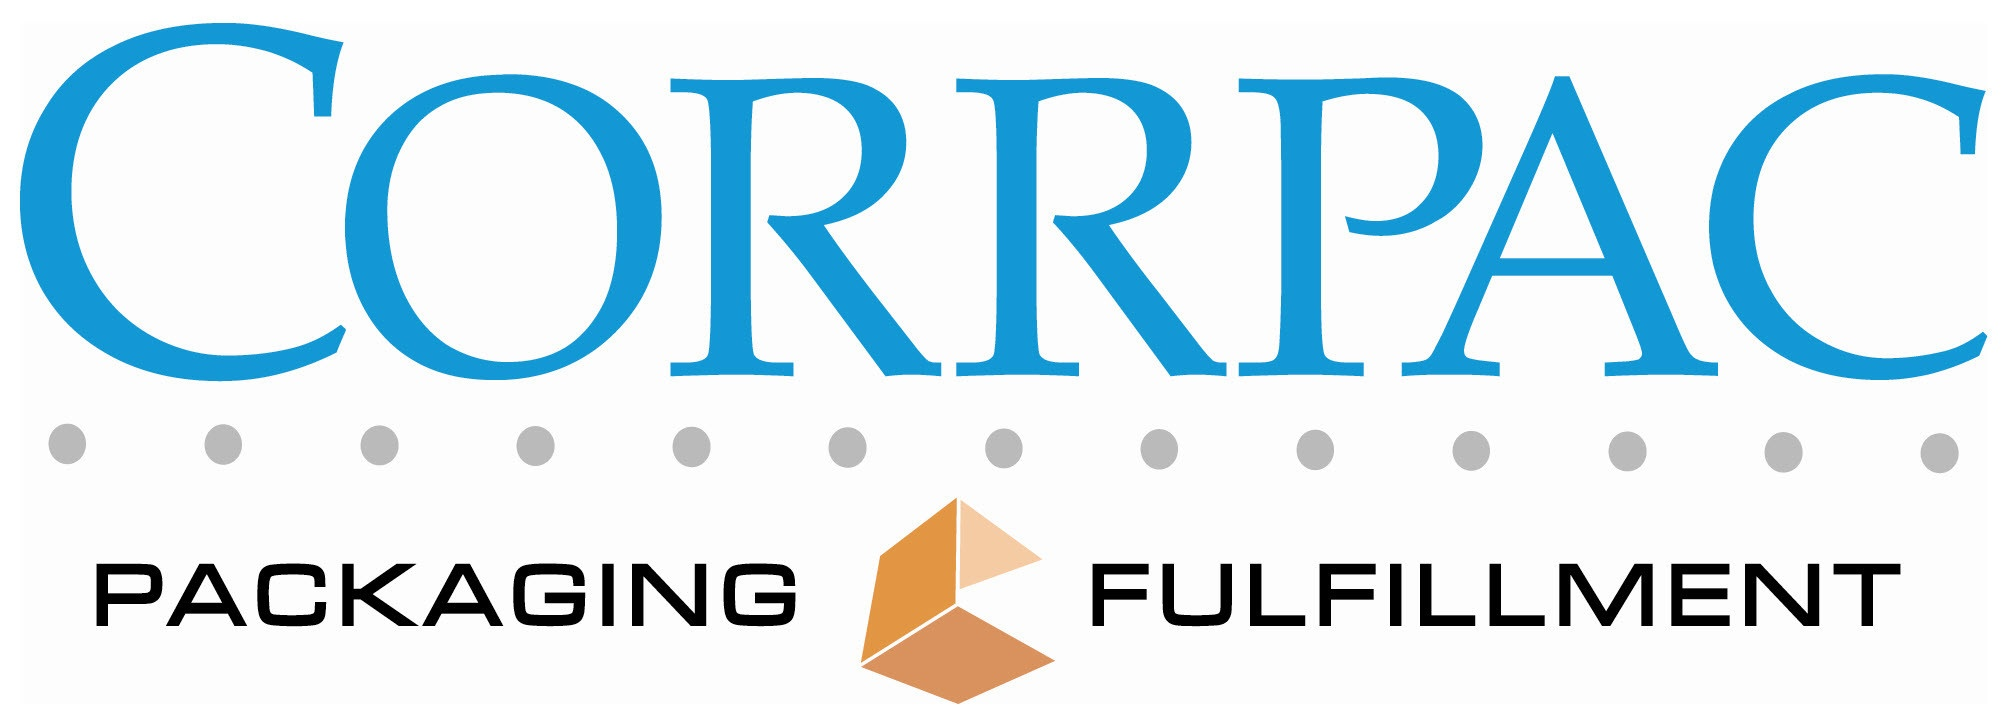 Corrpac